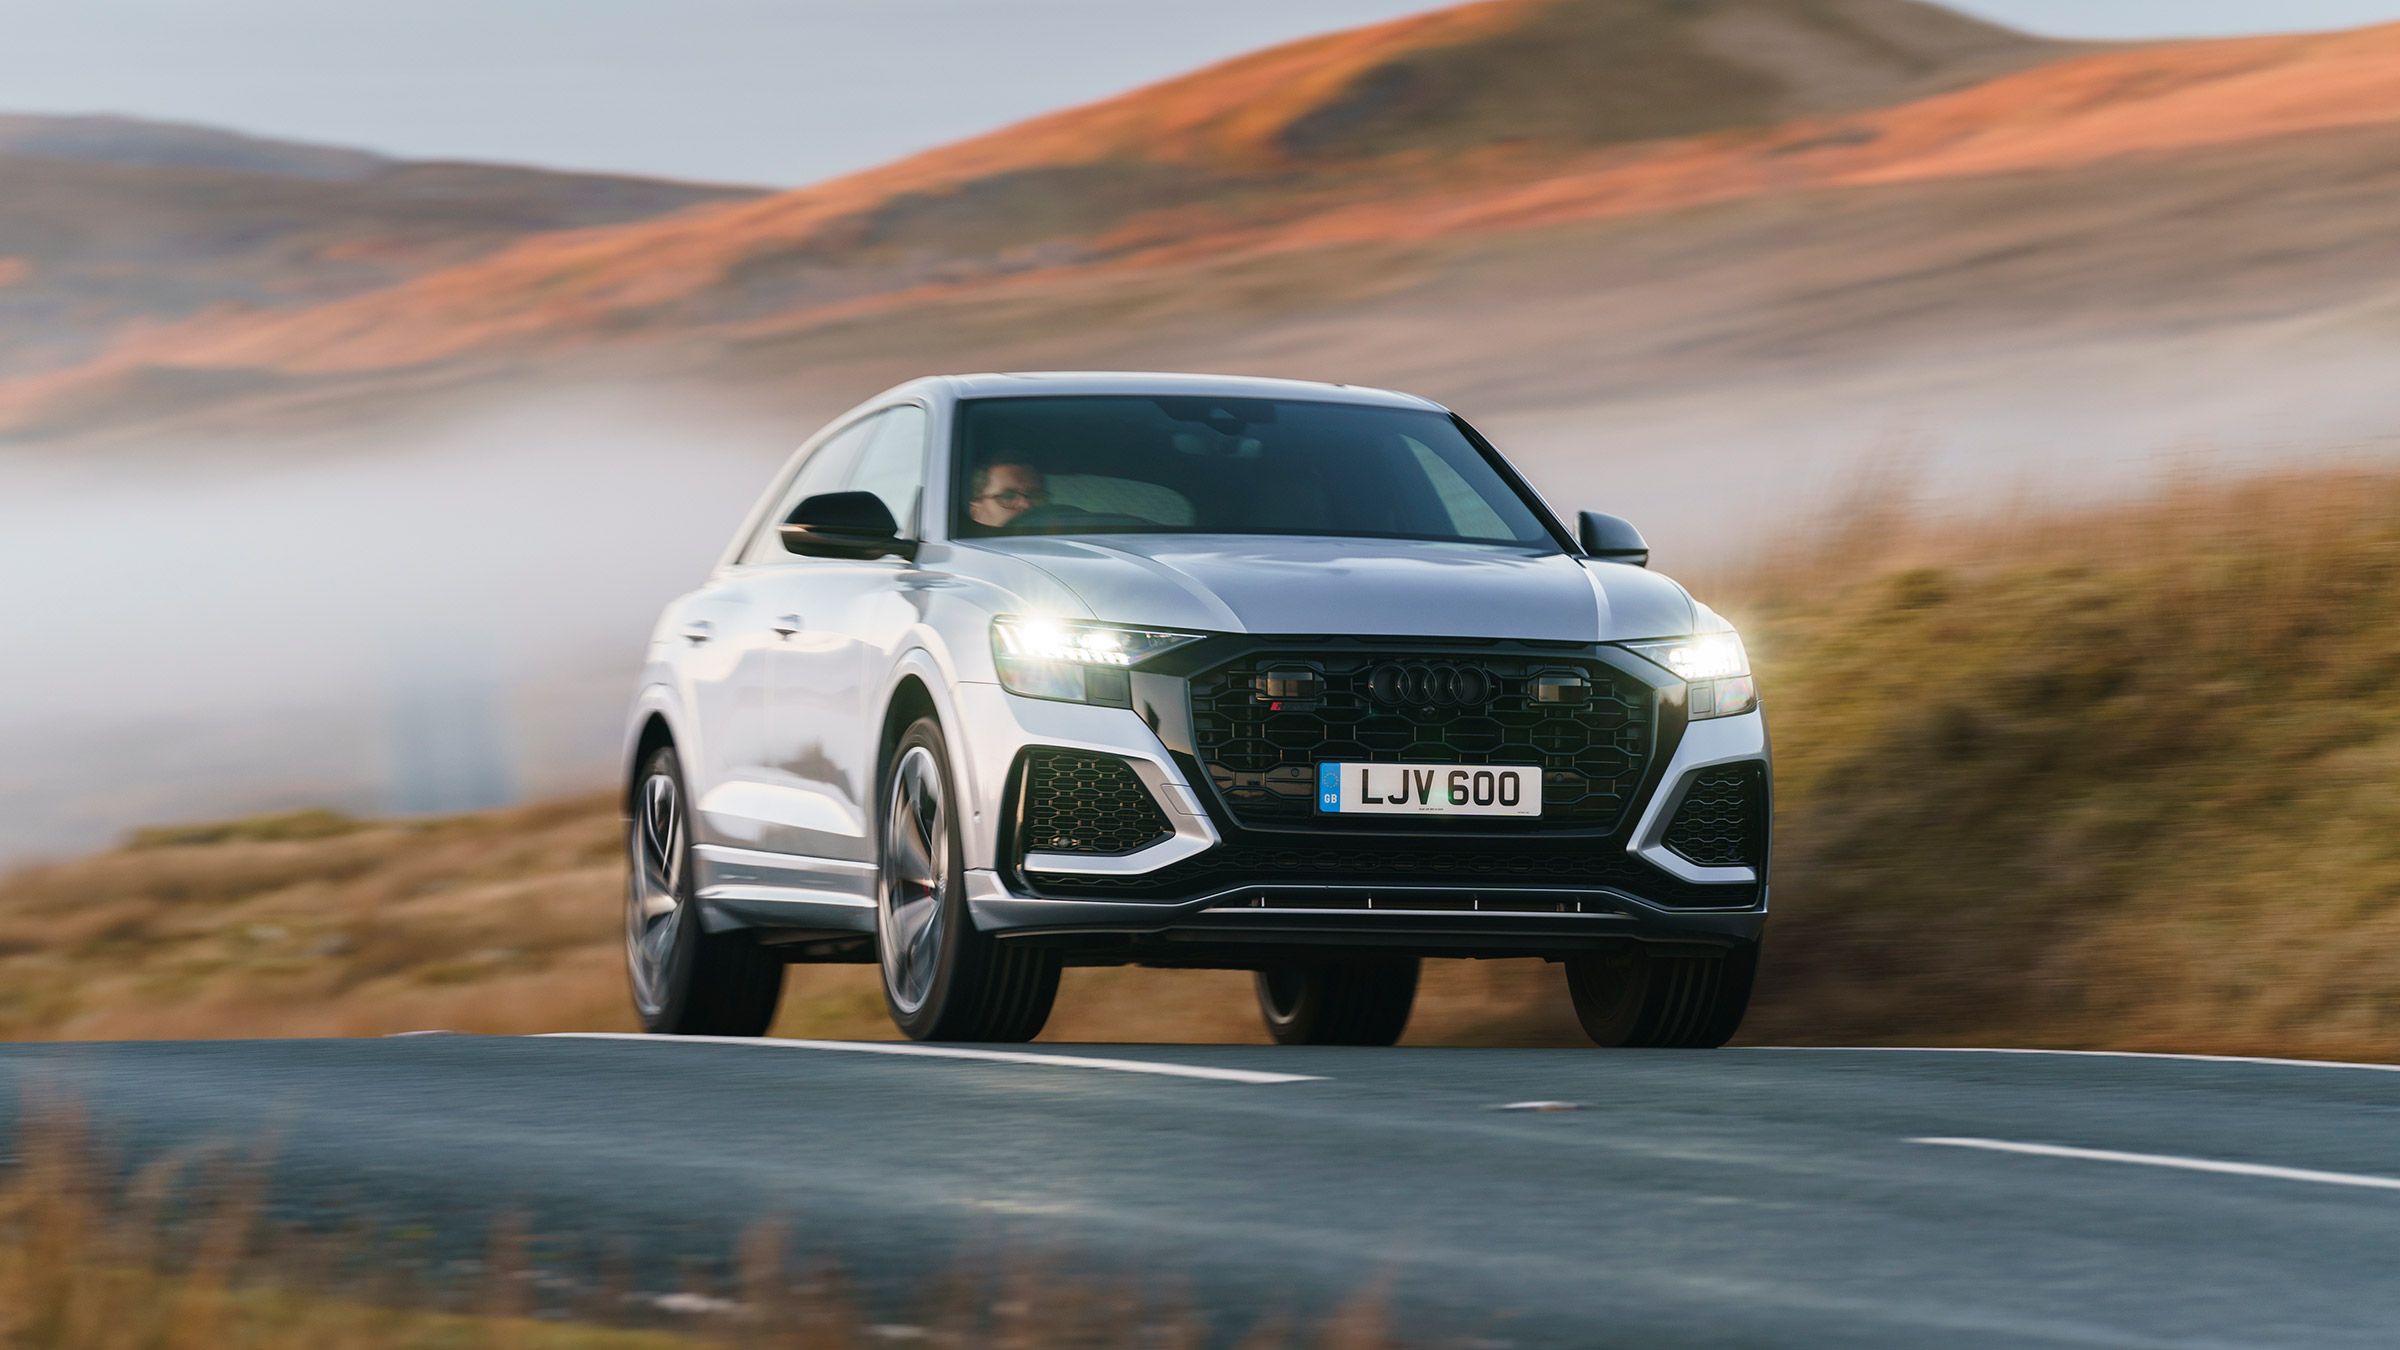 Audi Rsq8 Review The New Performance Suv King Evo